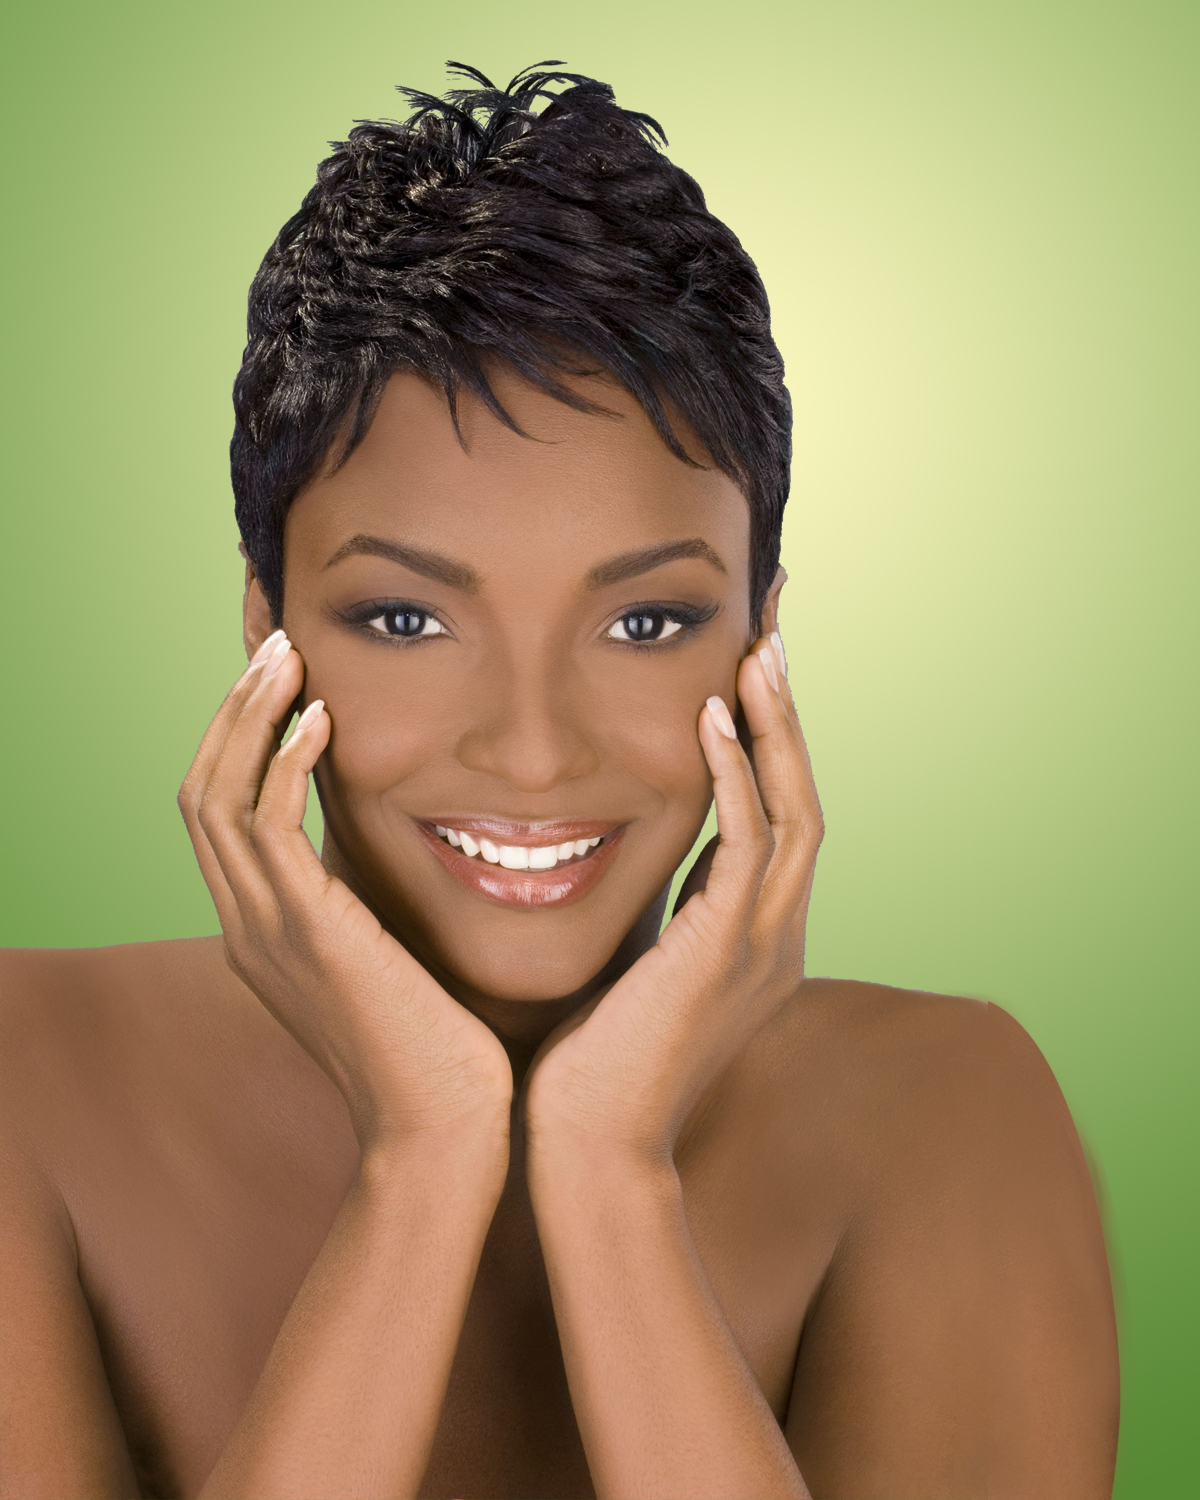 Short Hairstyles On Black Women – Hairstyle For Women & Man Inside Very Short Haircuts For Black Women (View 14 of 25)